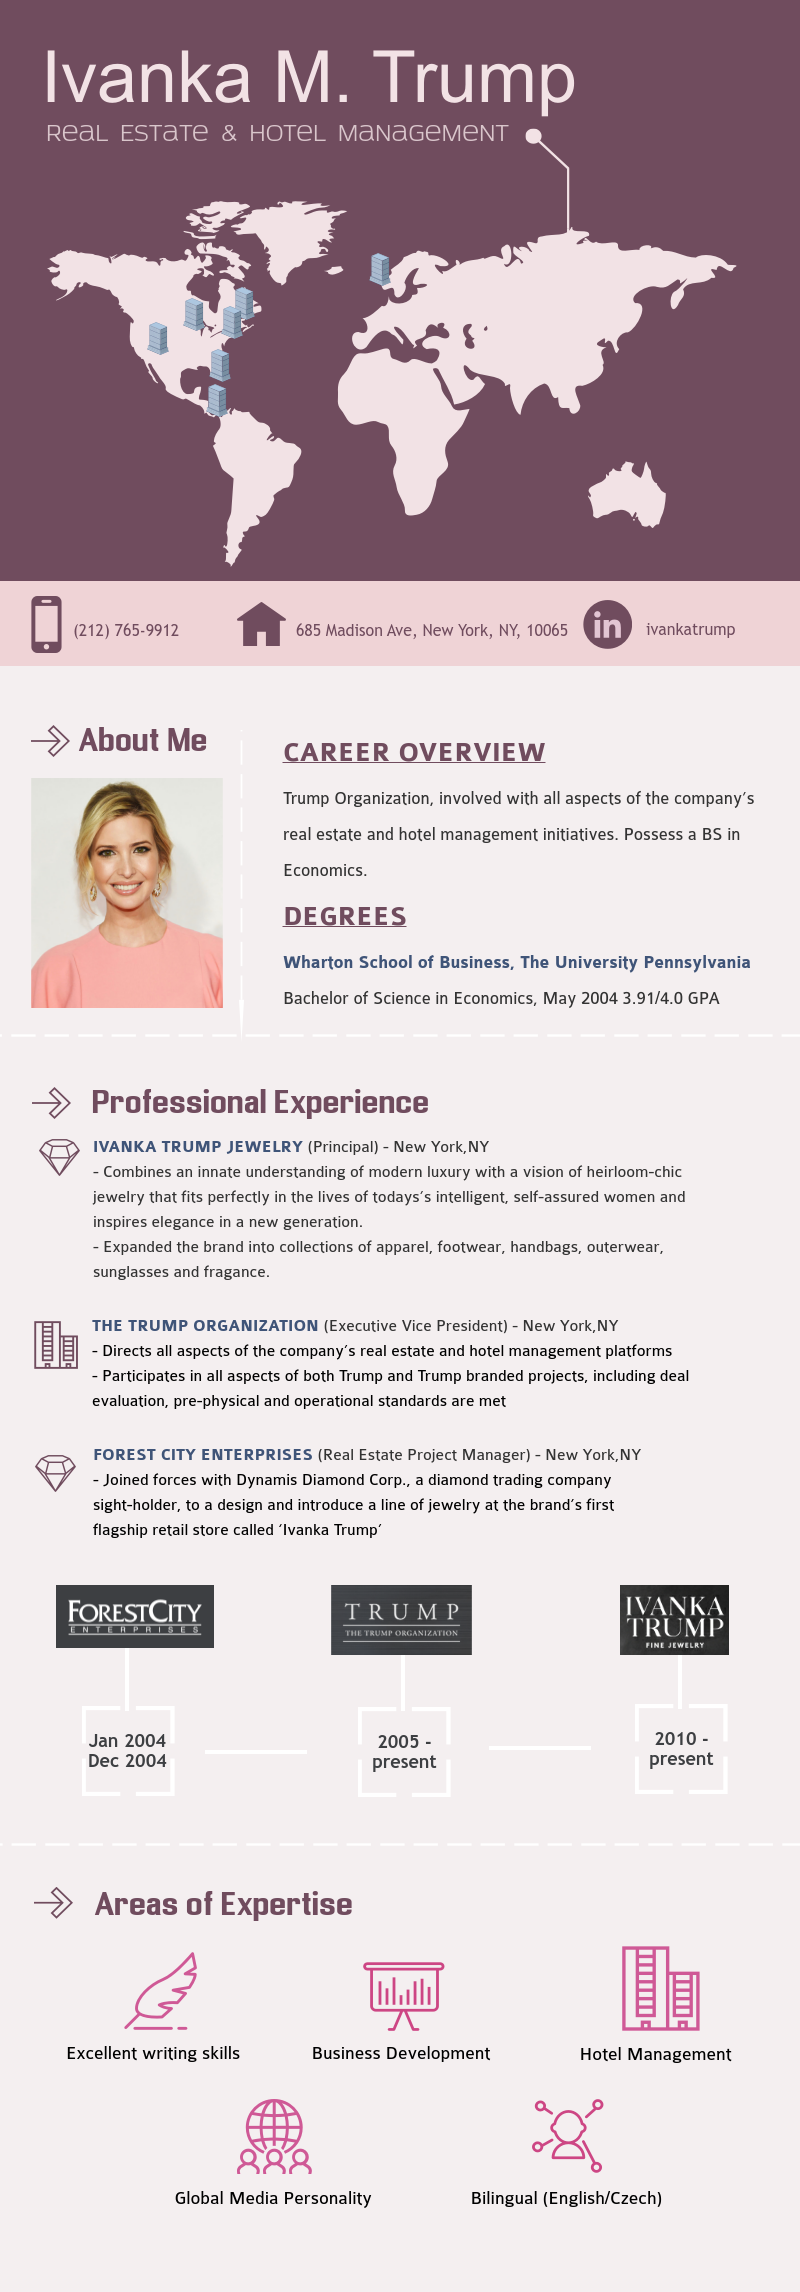 ivanka trump resume after